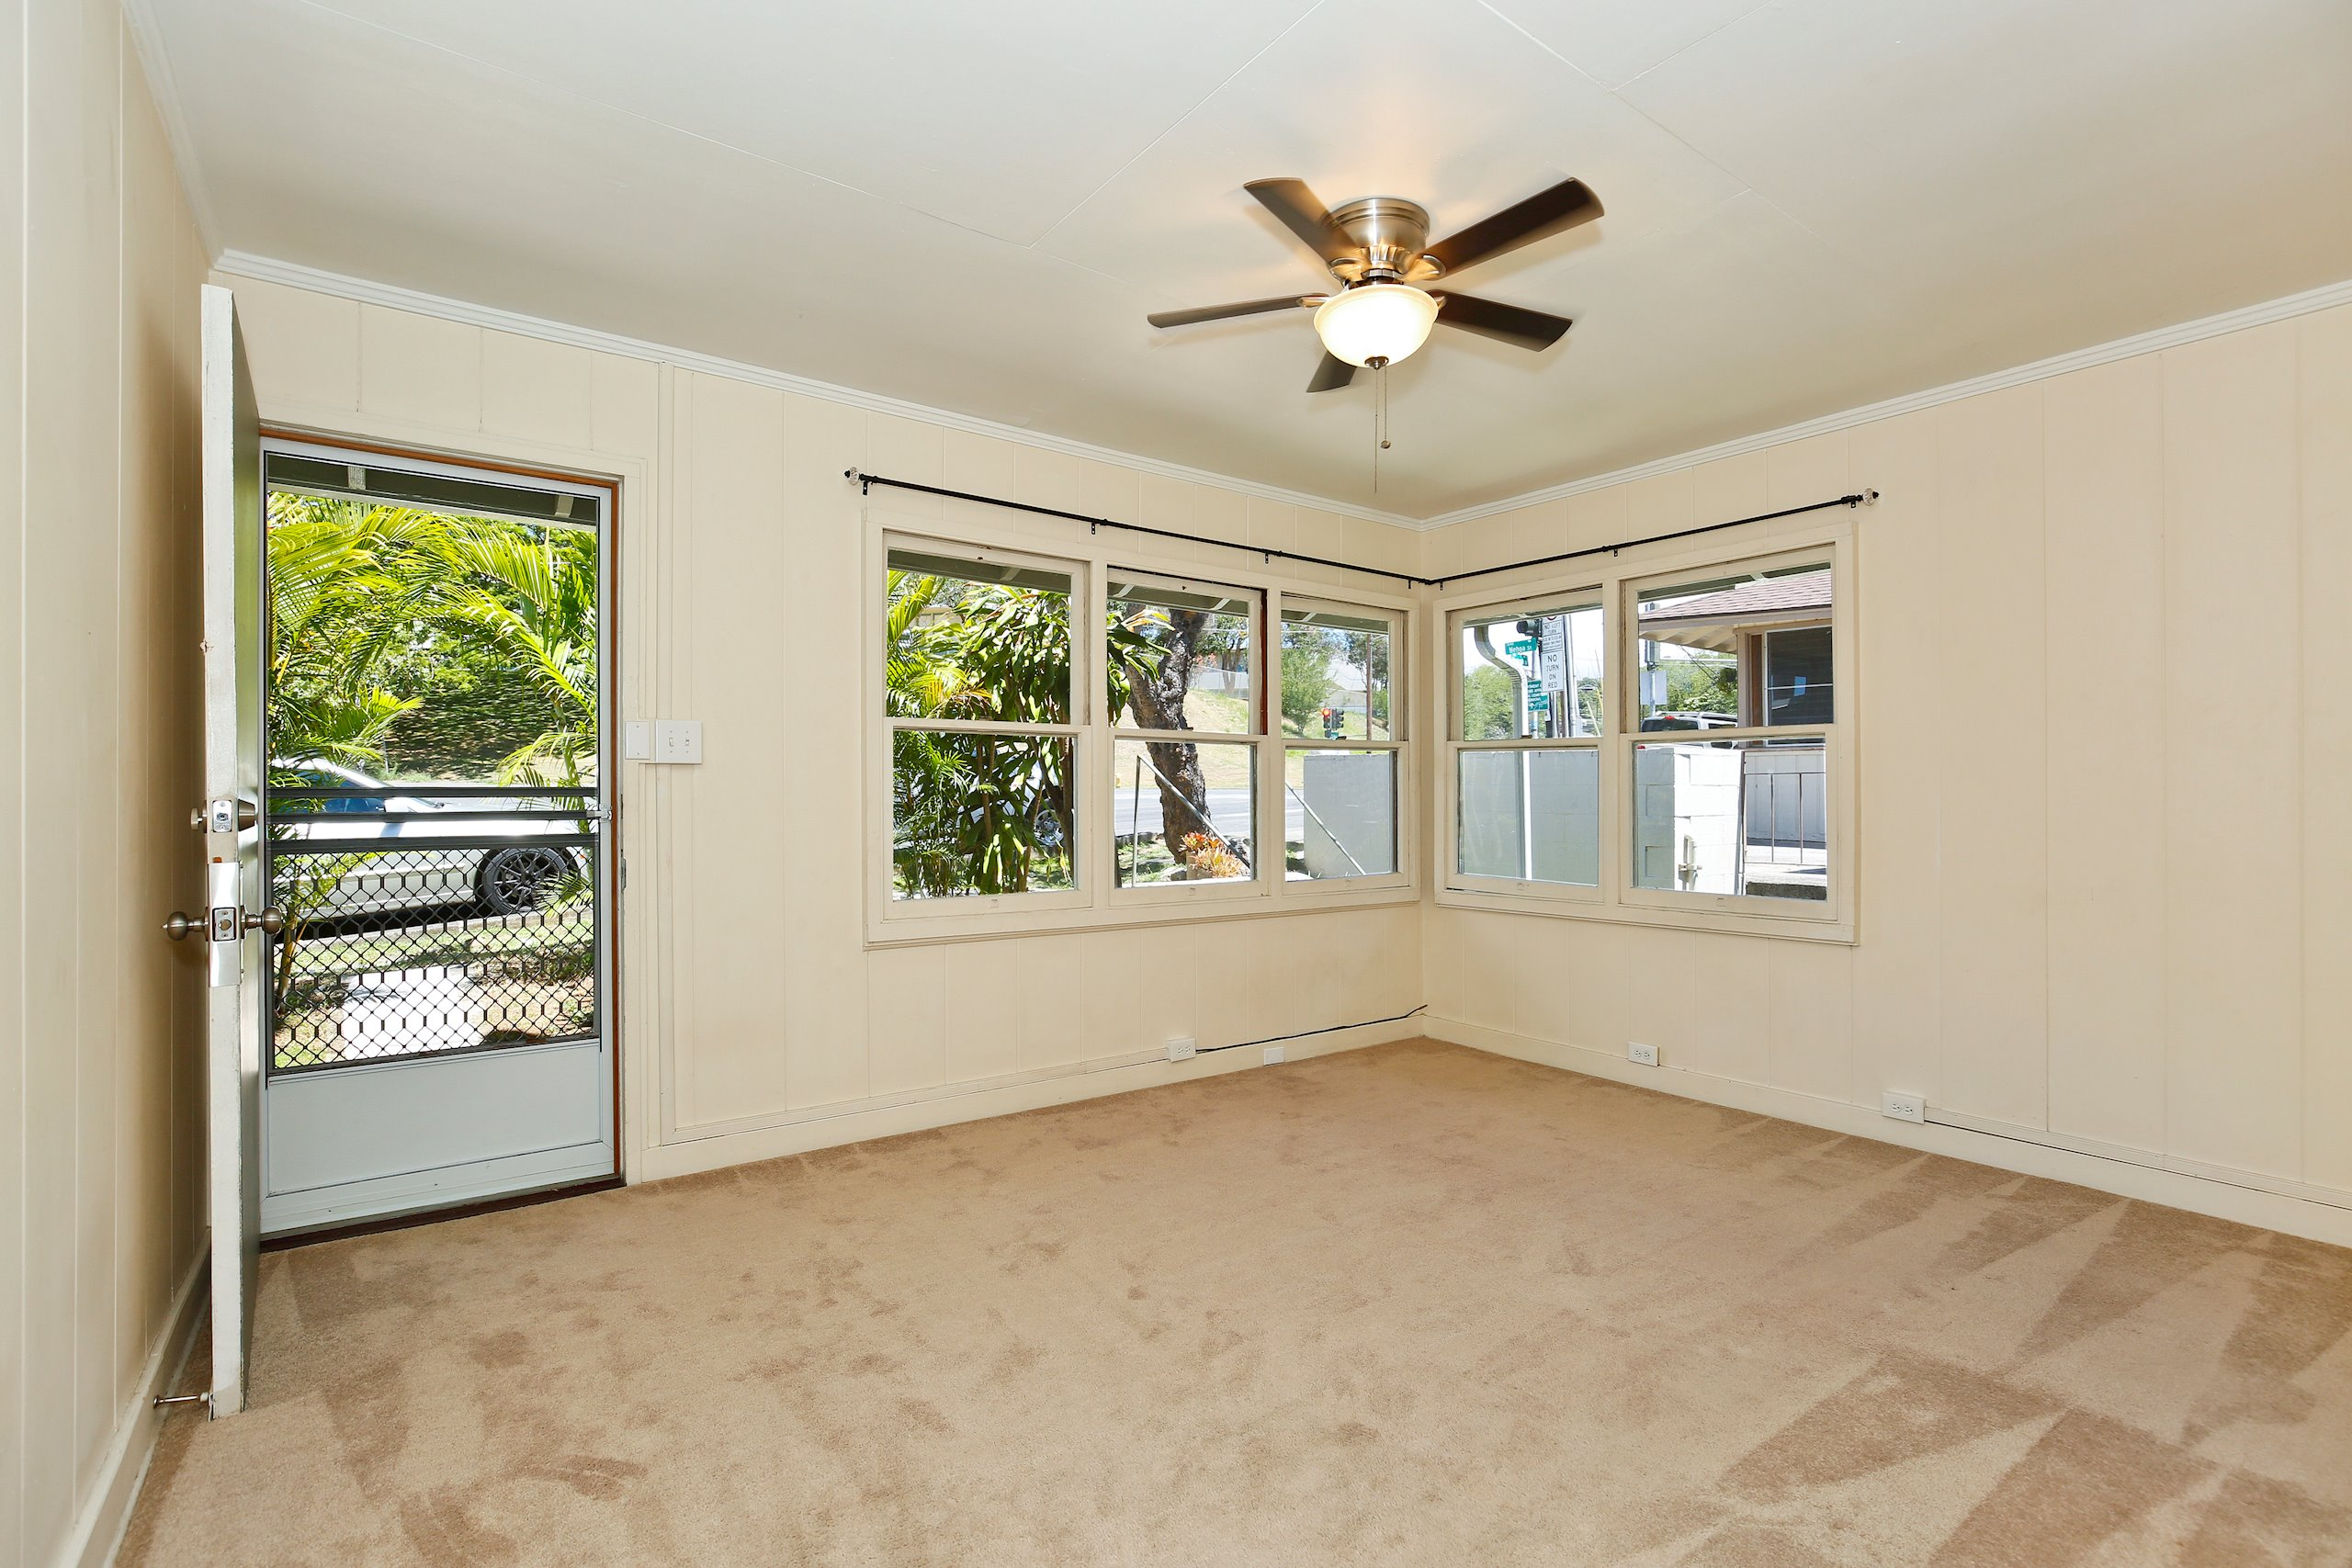 Excellent location with easy access to freeways, Downtown and schools including UH Manoa. Don't be fooled by the street frontage of the 2 lots which open up to a Mango tree canopy and spacious yard below. Some units have been recently remodeled. Stable rental income with well qualified tenants. Many fruit trees. Electrical and gas are separately metered for each unit. Lots of potential for development. List price is for both properties 1709 MLS 201914529 and 1715 MLS 201914533.